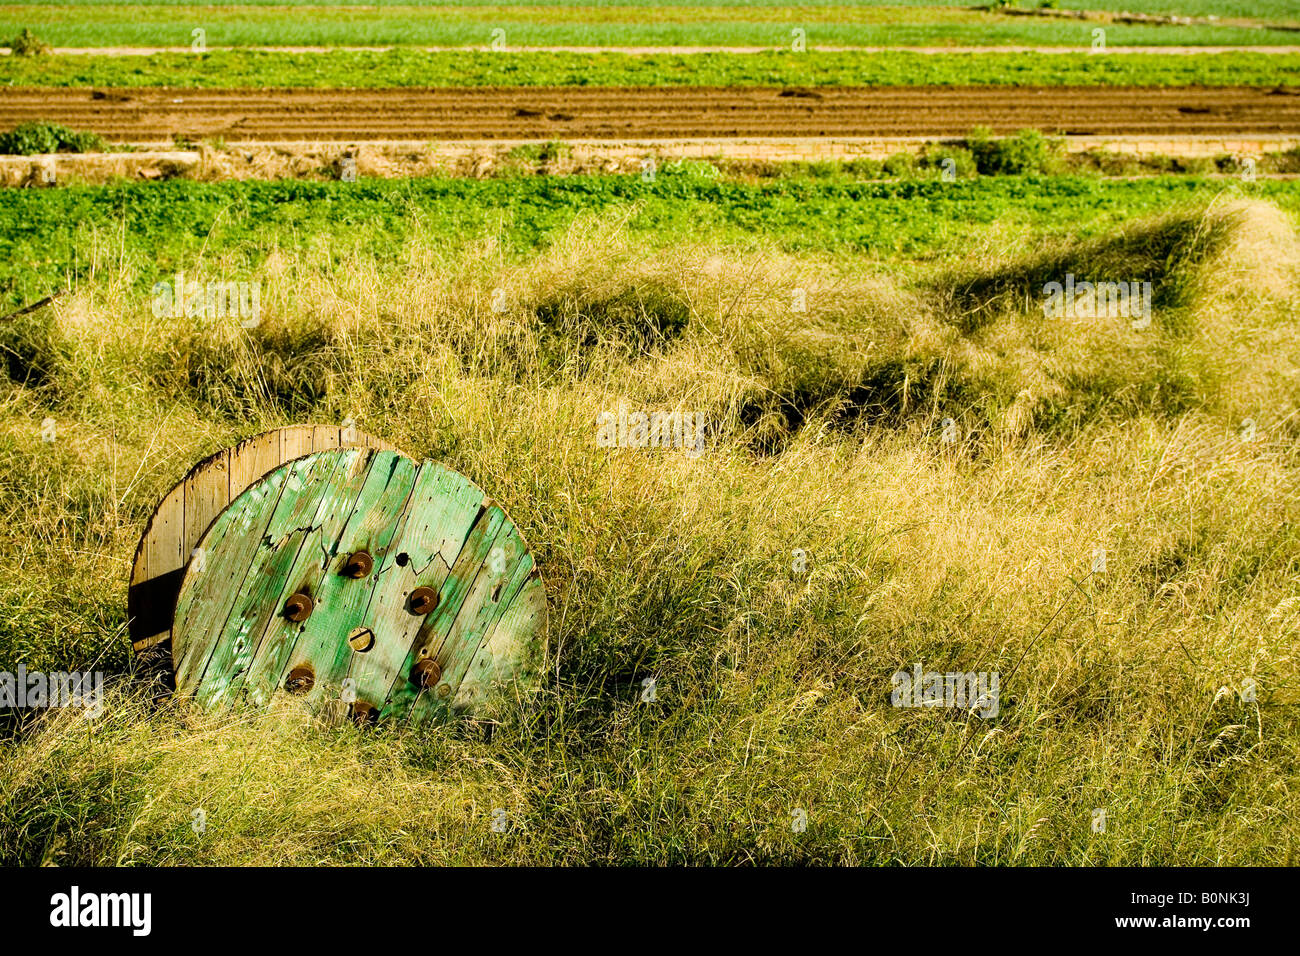 periphery, field, tractor mark - Stock Image